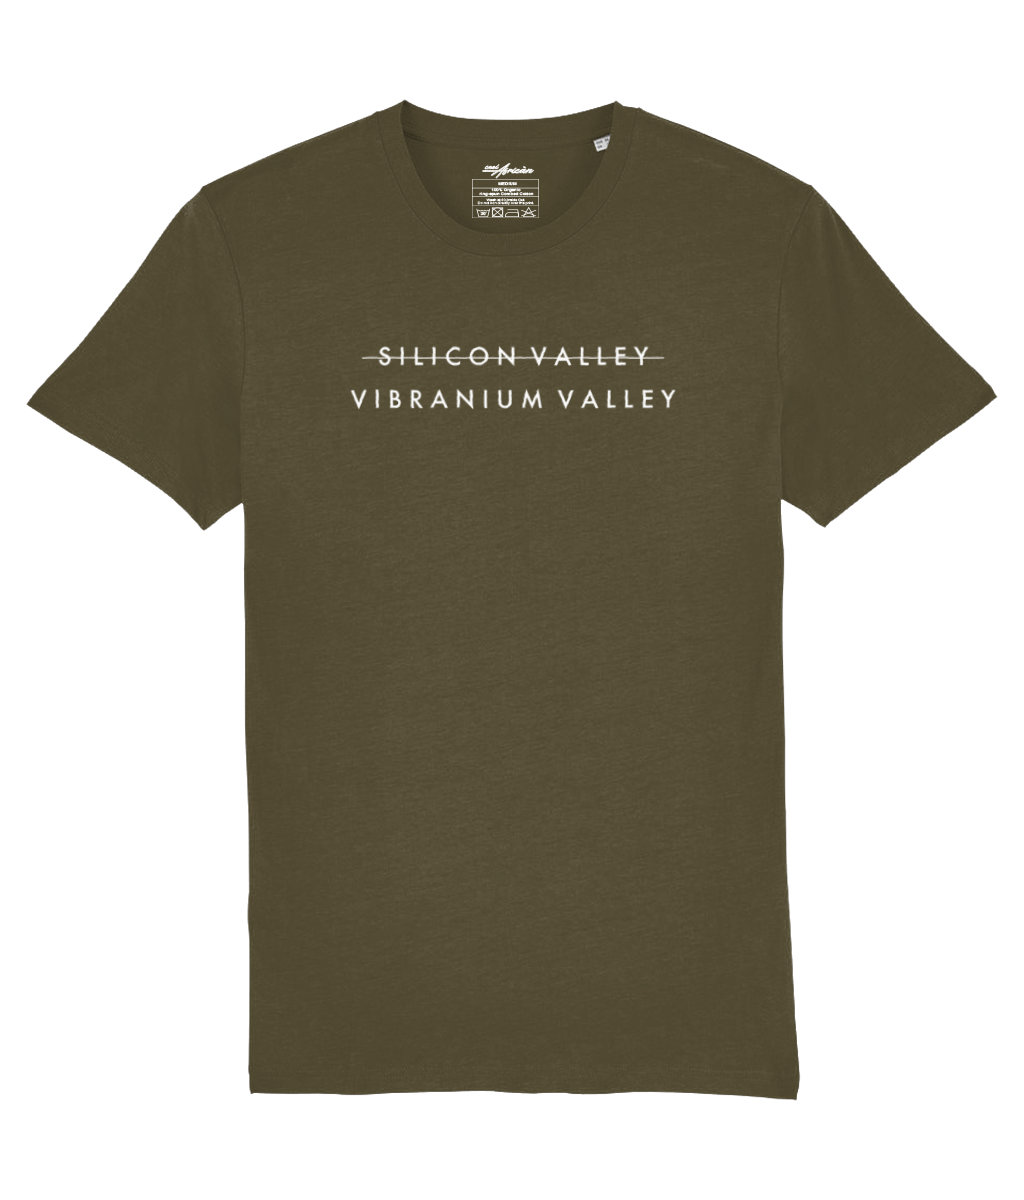 Vibranium Valley T-Shirt